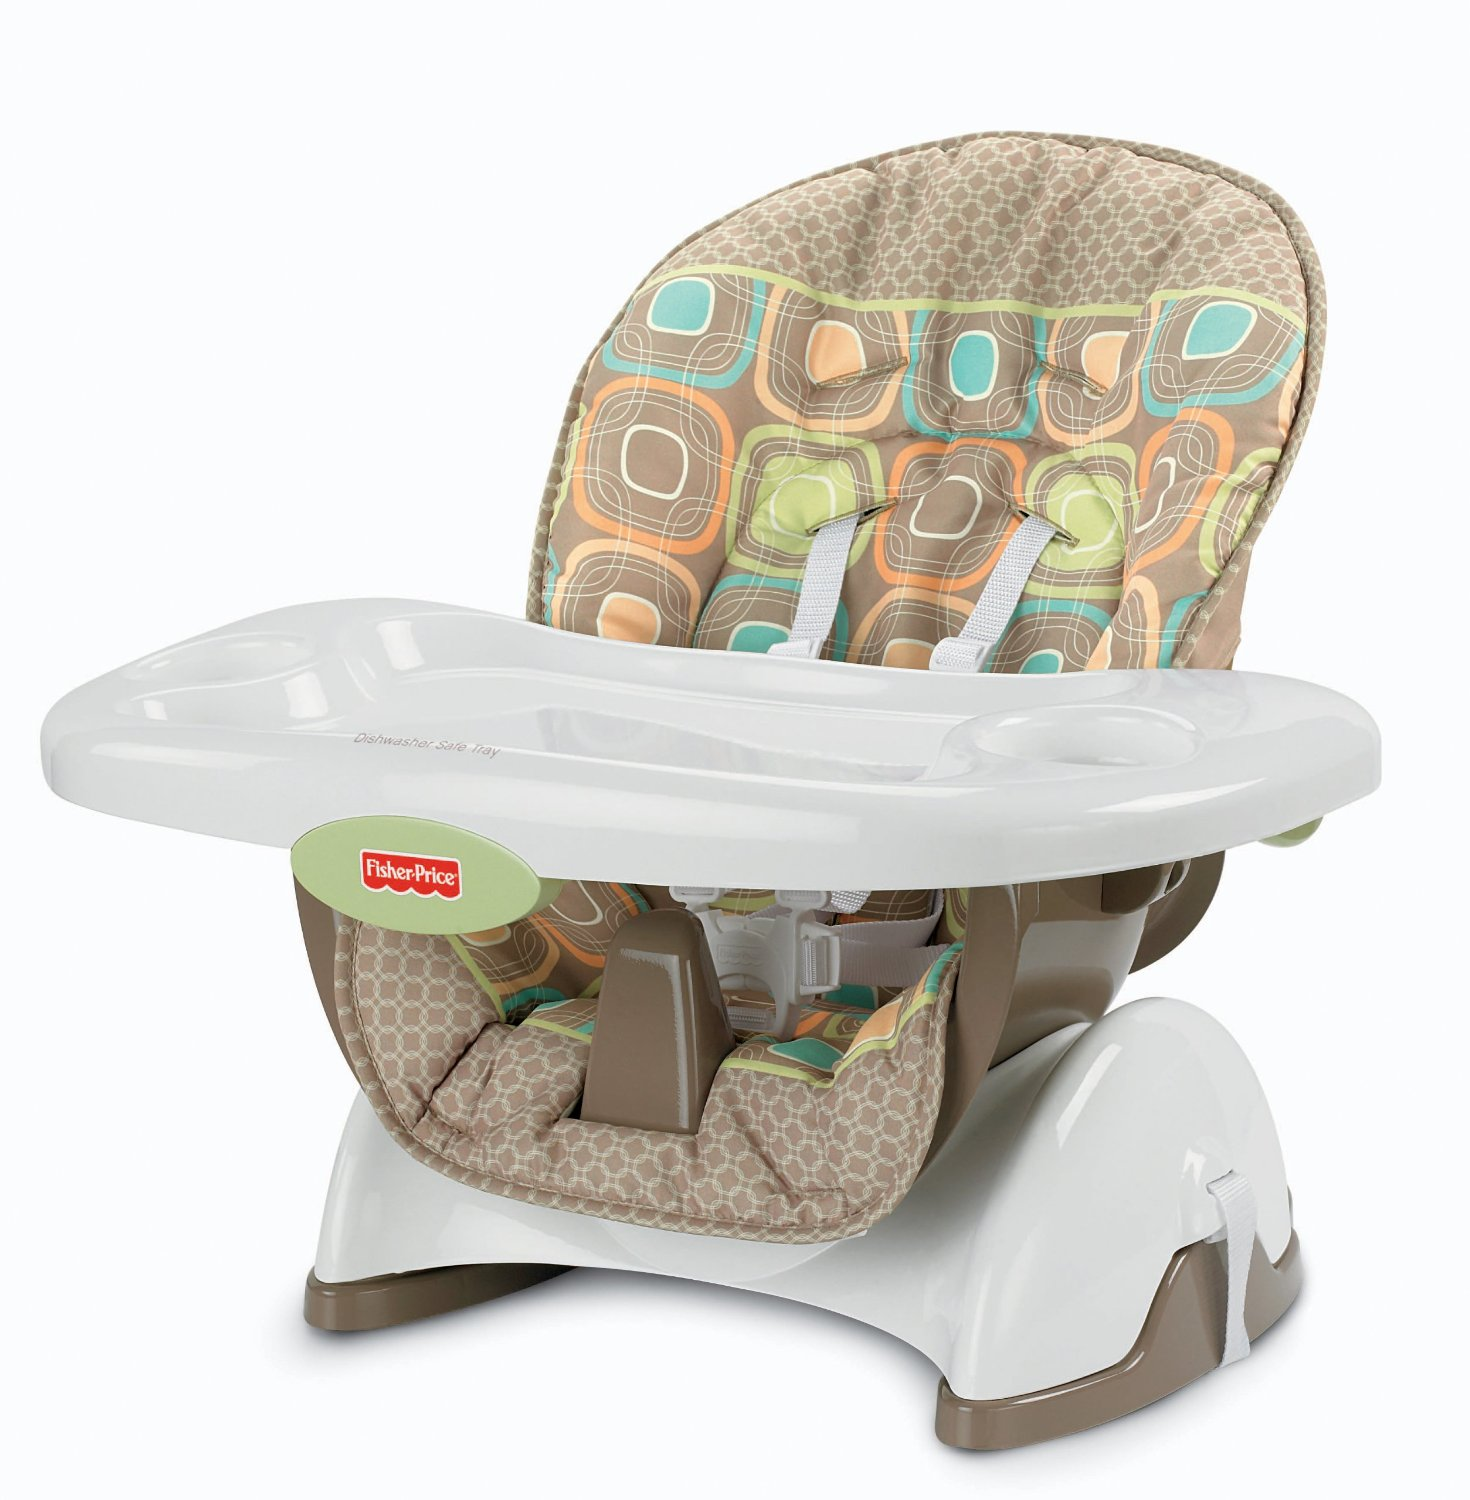 Merveilleux High Chair Booster Seat